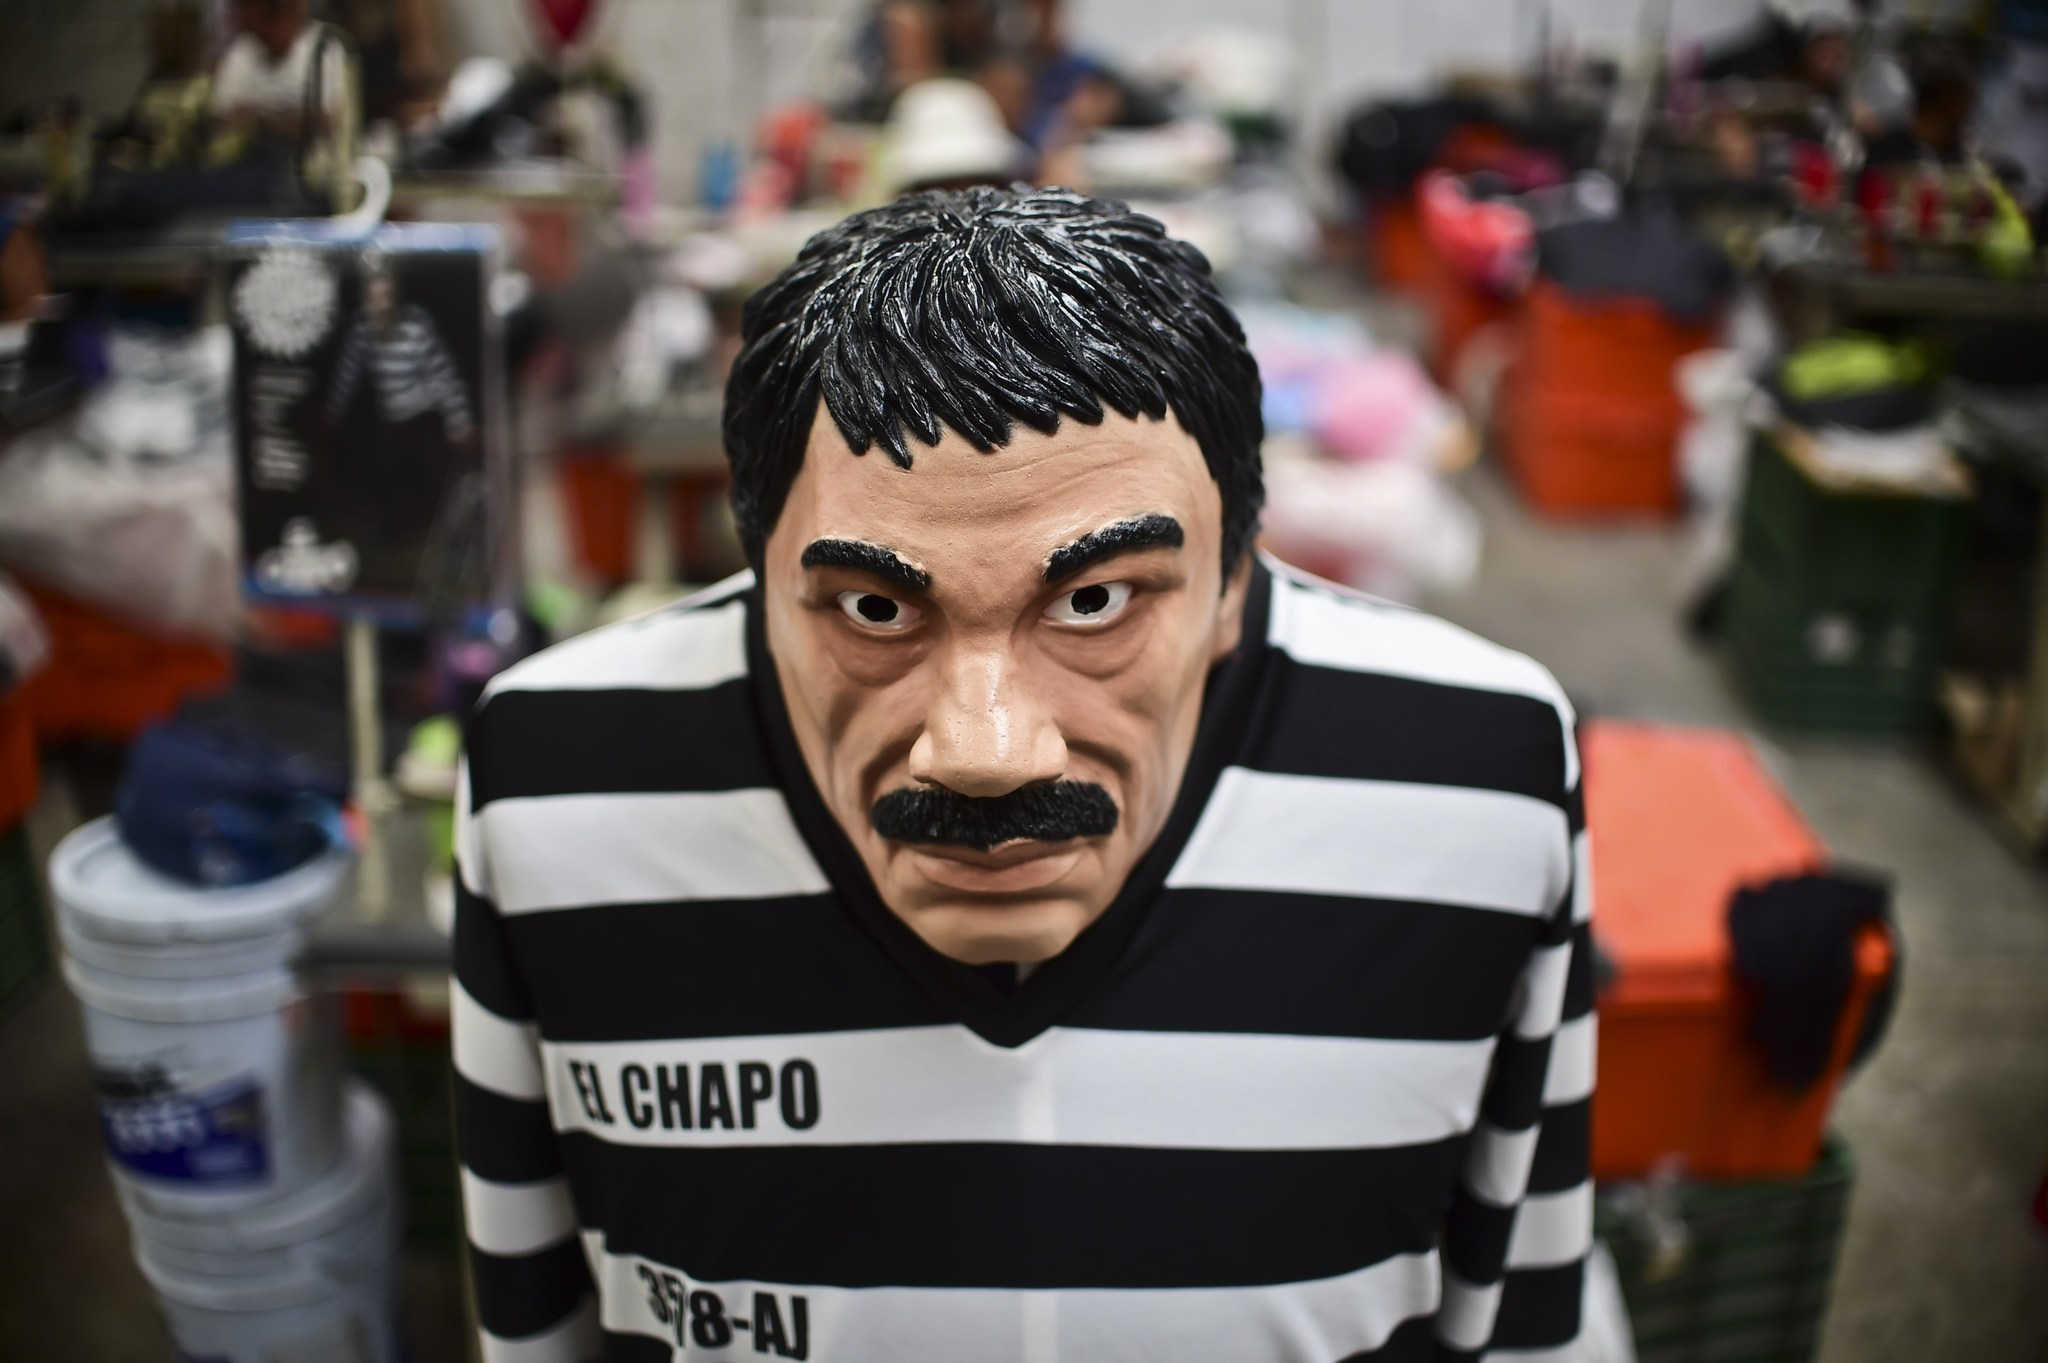 el chapo everywhere: drug lord costume a halloween hit in mexico